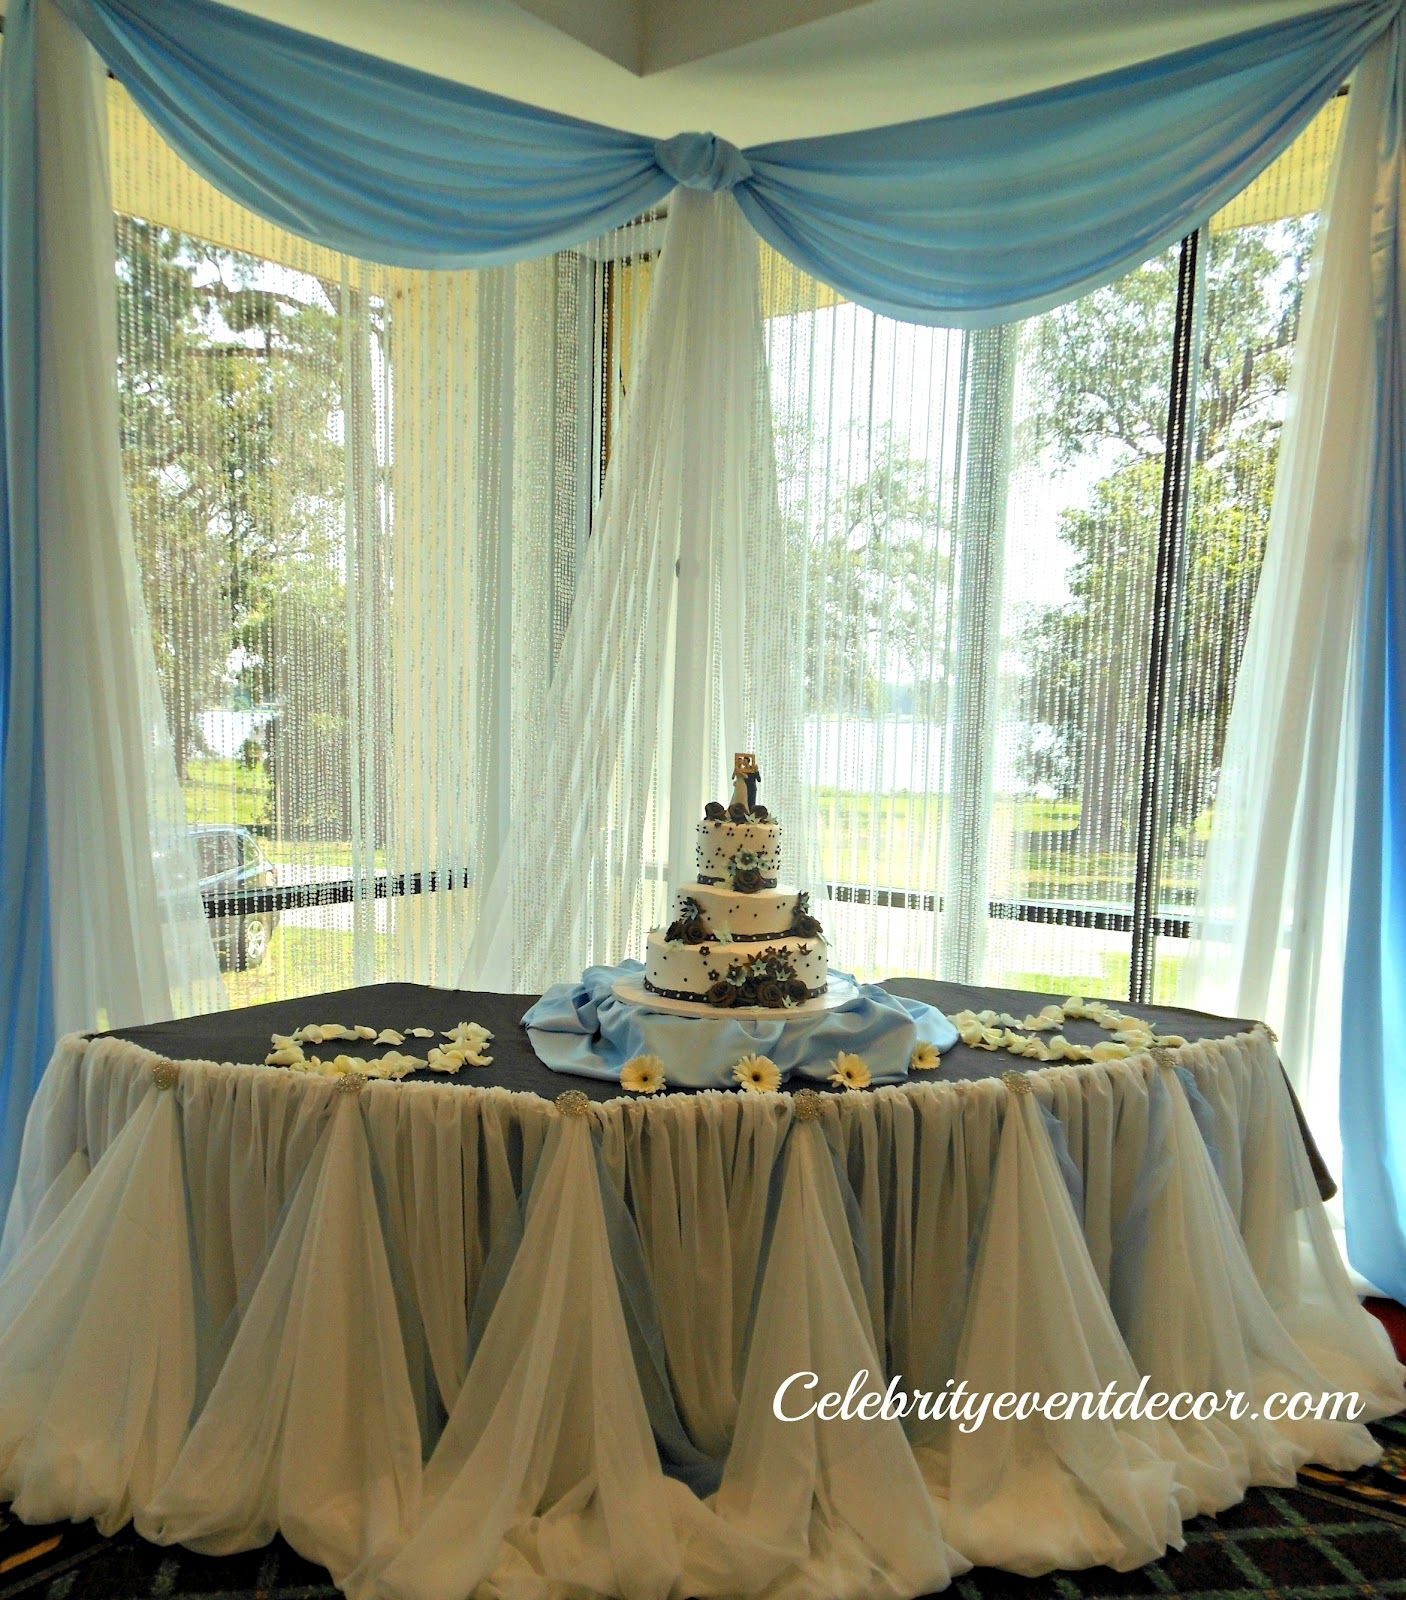 Buffet table skirting - Wedding Table Skirting Design Wedding Table Skirting Decorating Cake Table Ideas Cake Table Decoration With An